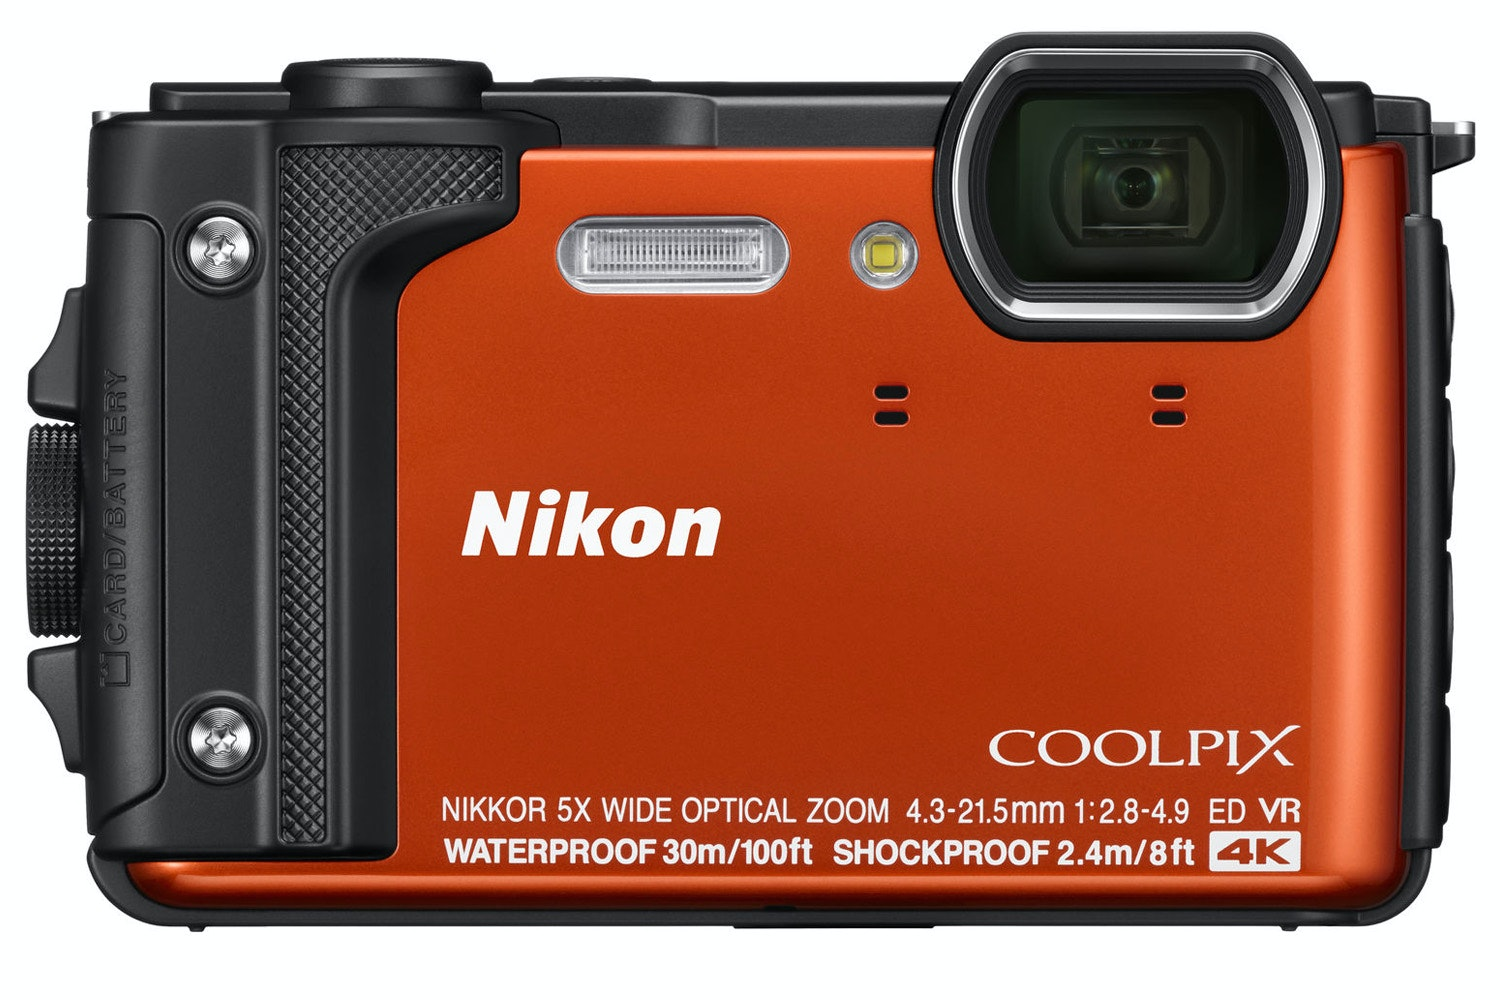 Nikon Coolpix Digital Camera W300 | Orange